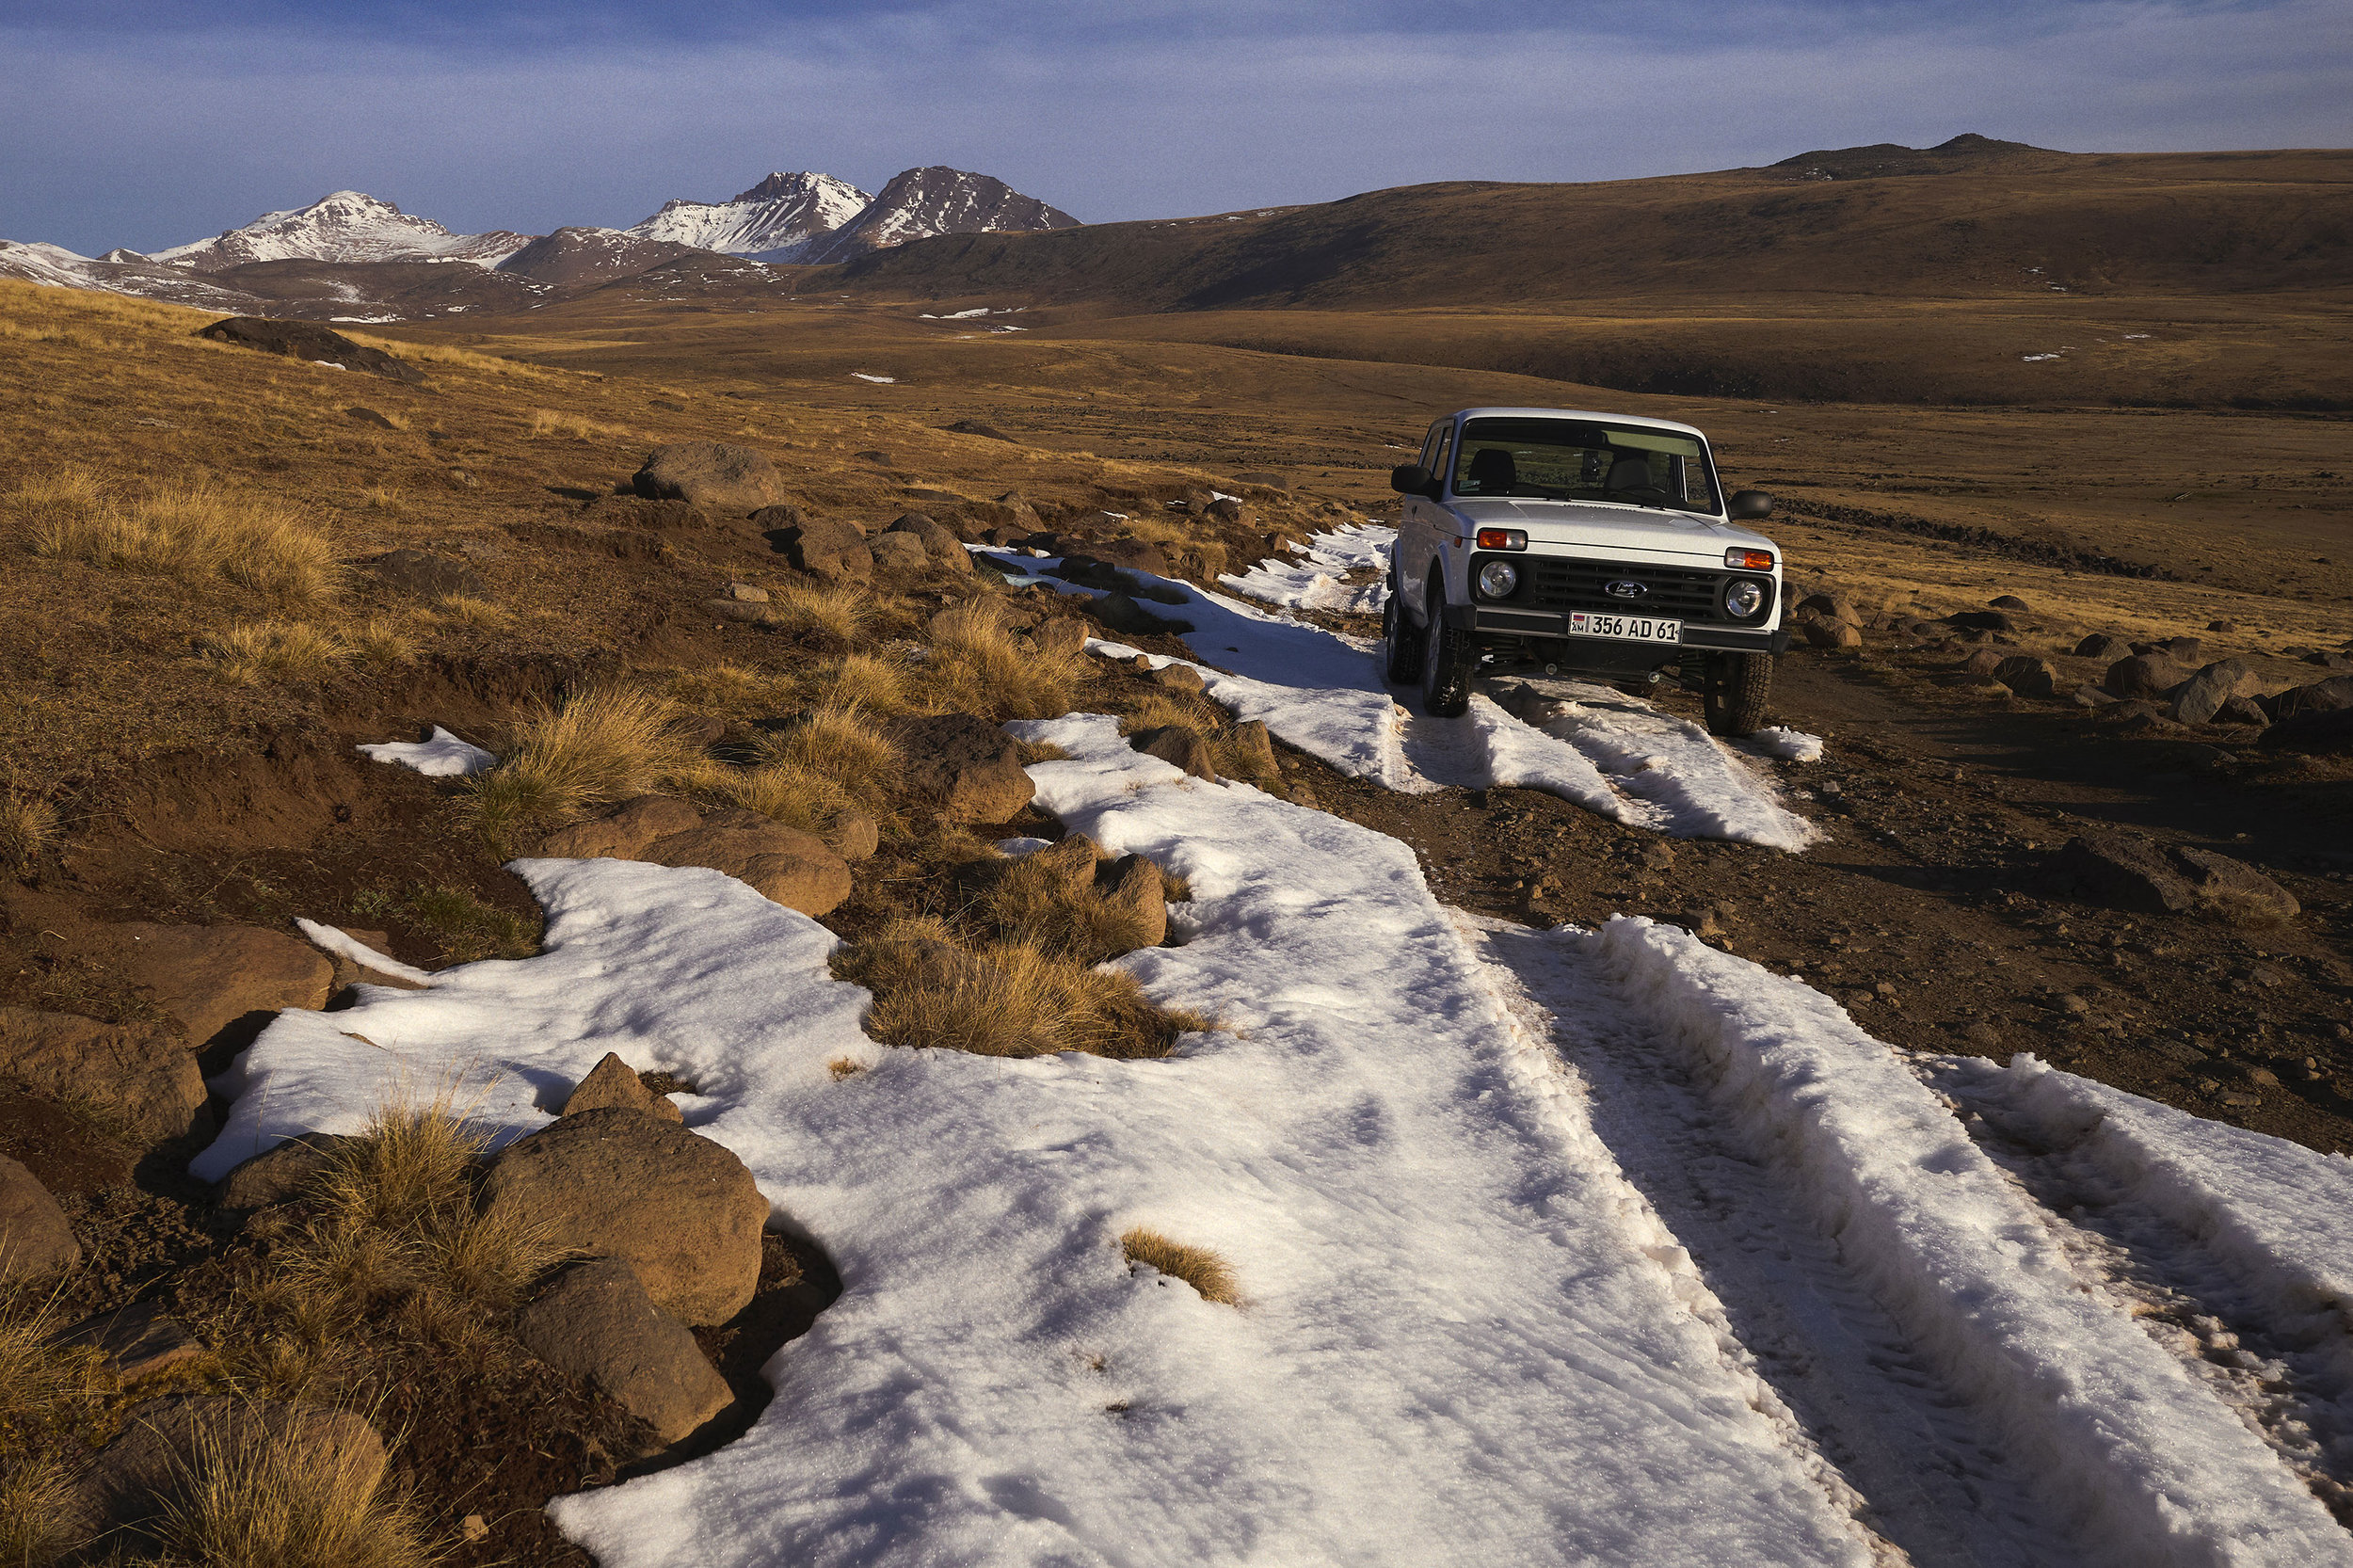 Niva in snow around Mt Aragats